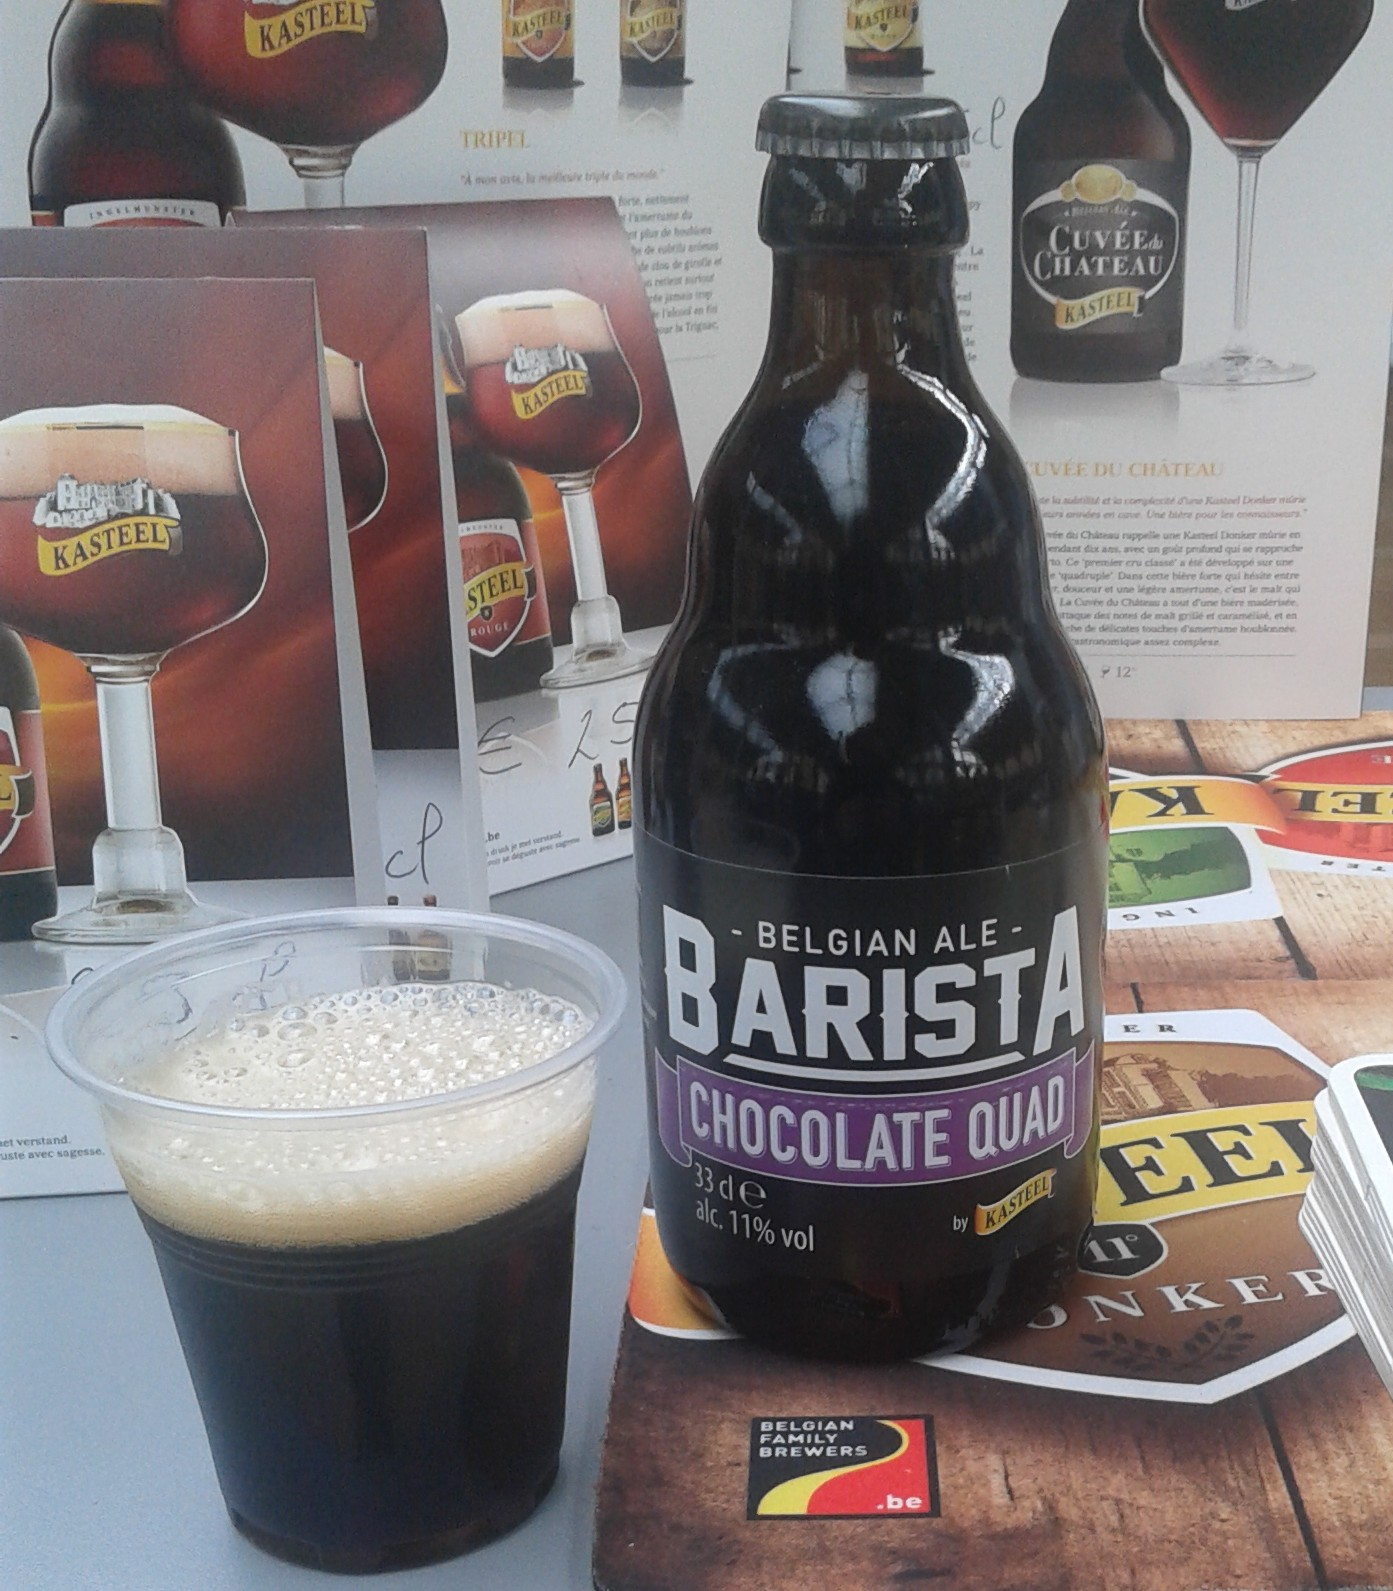 Barista chocolate-quad